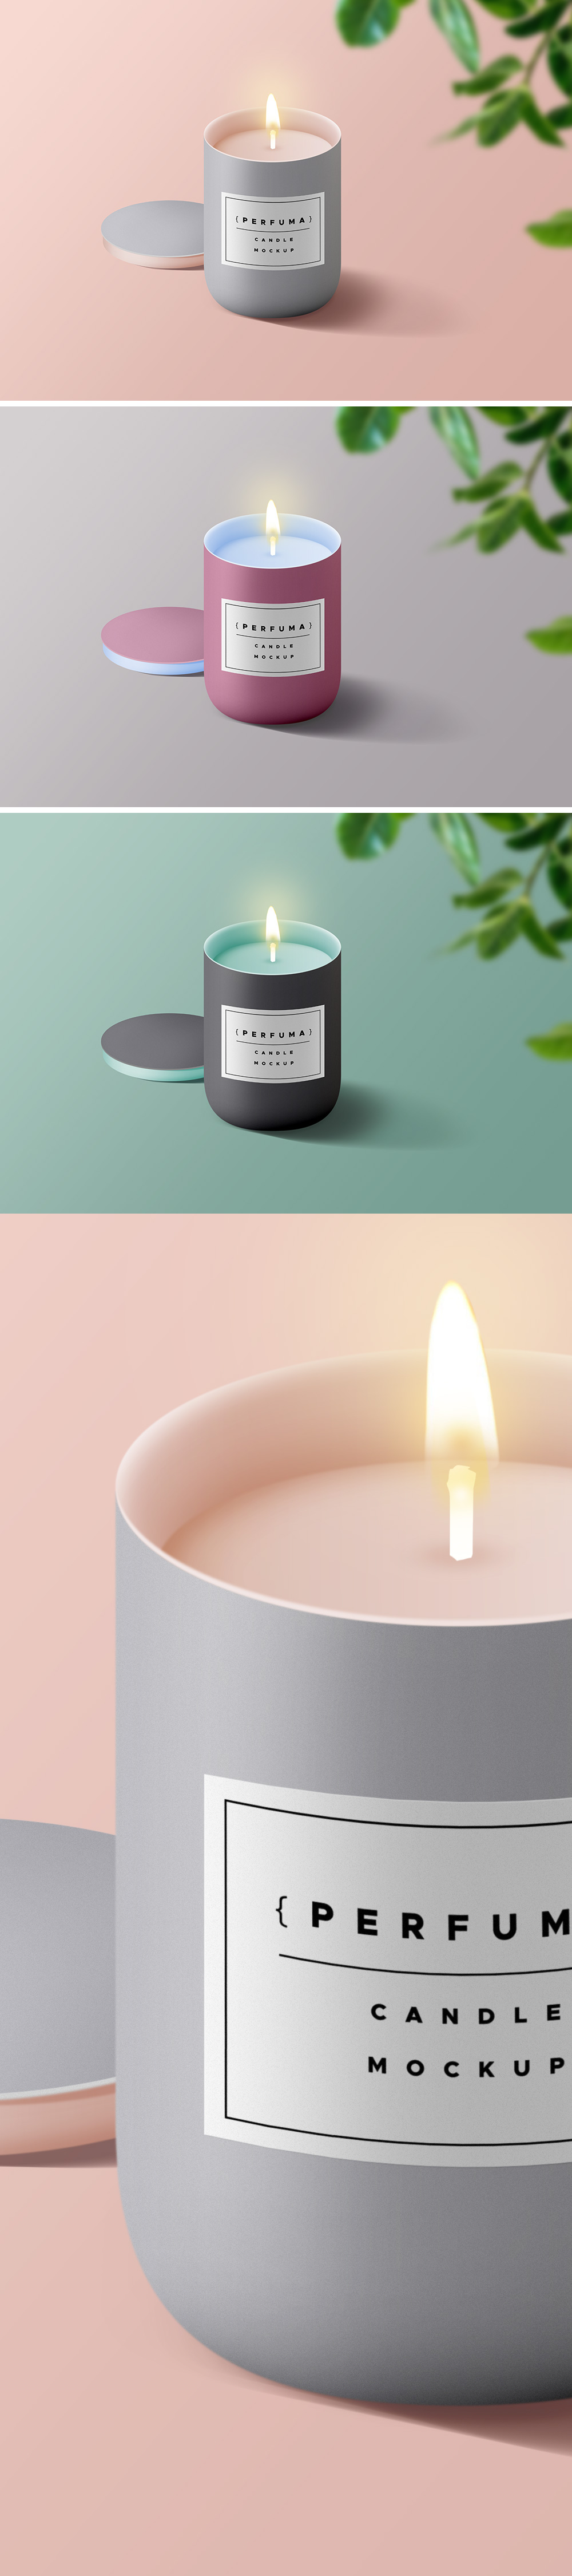 Candle Mockup PSD